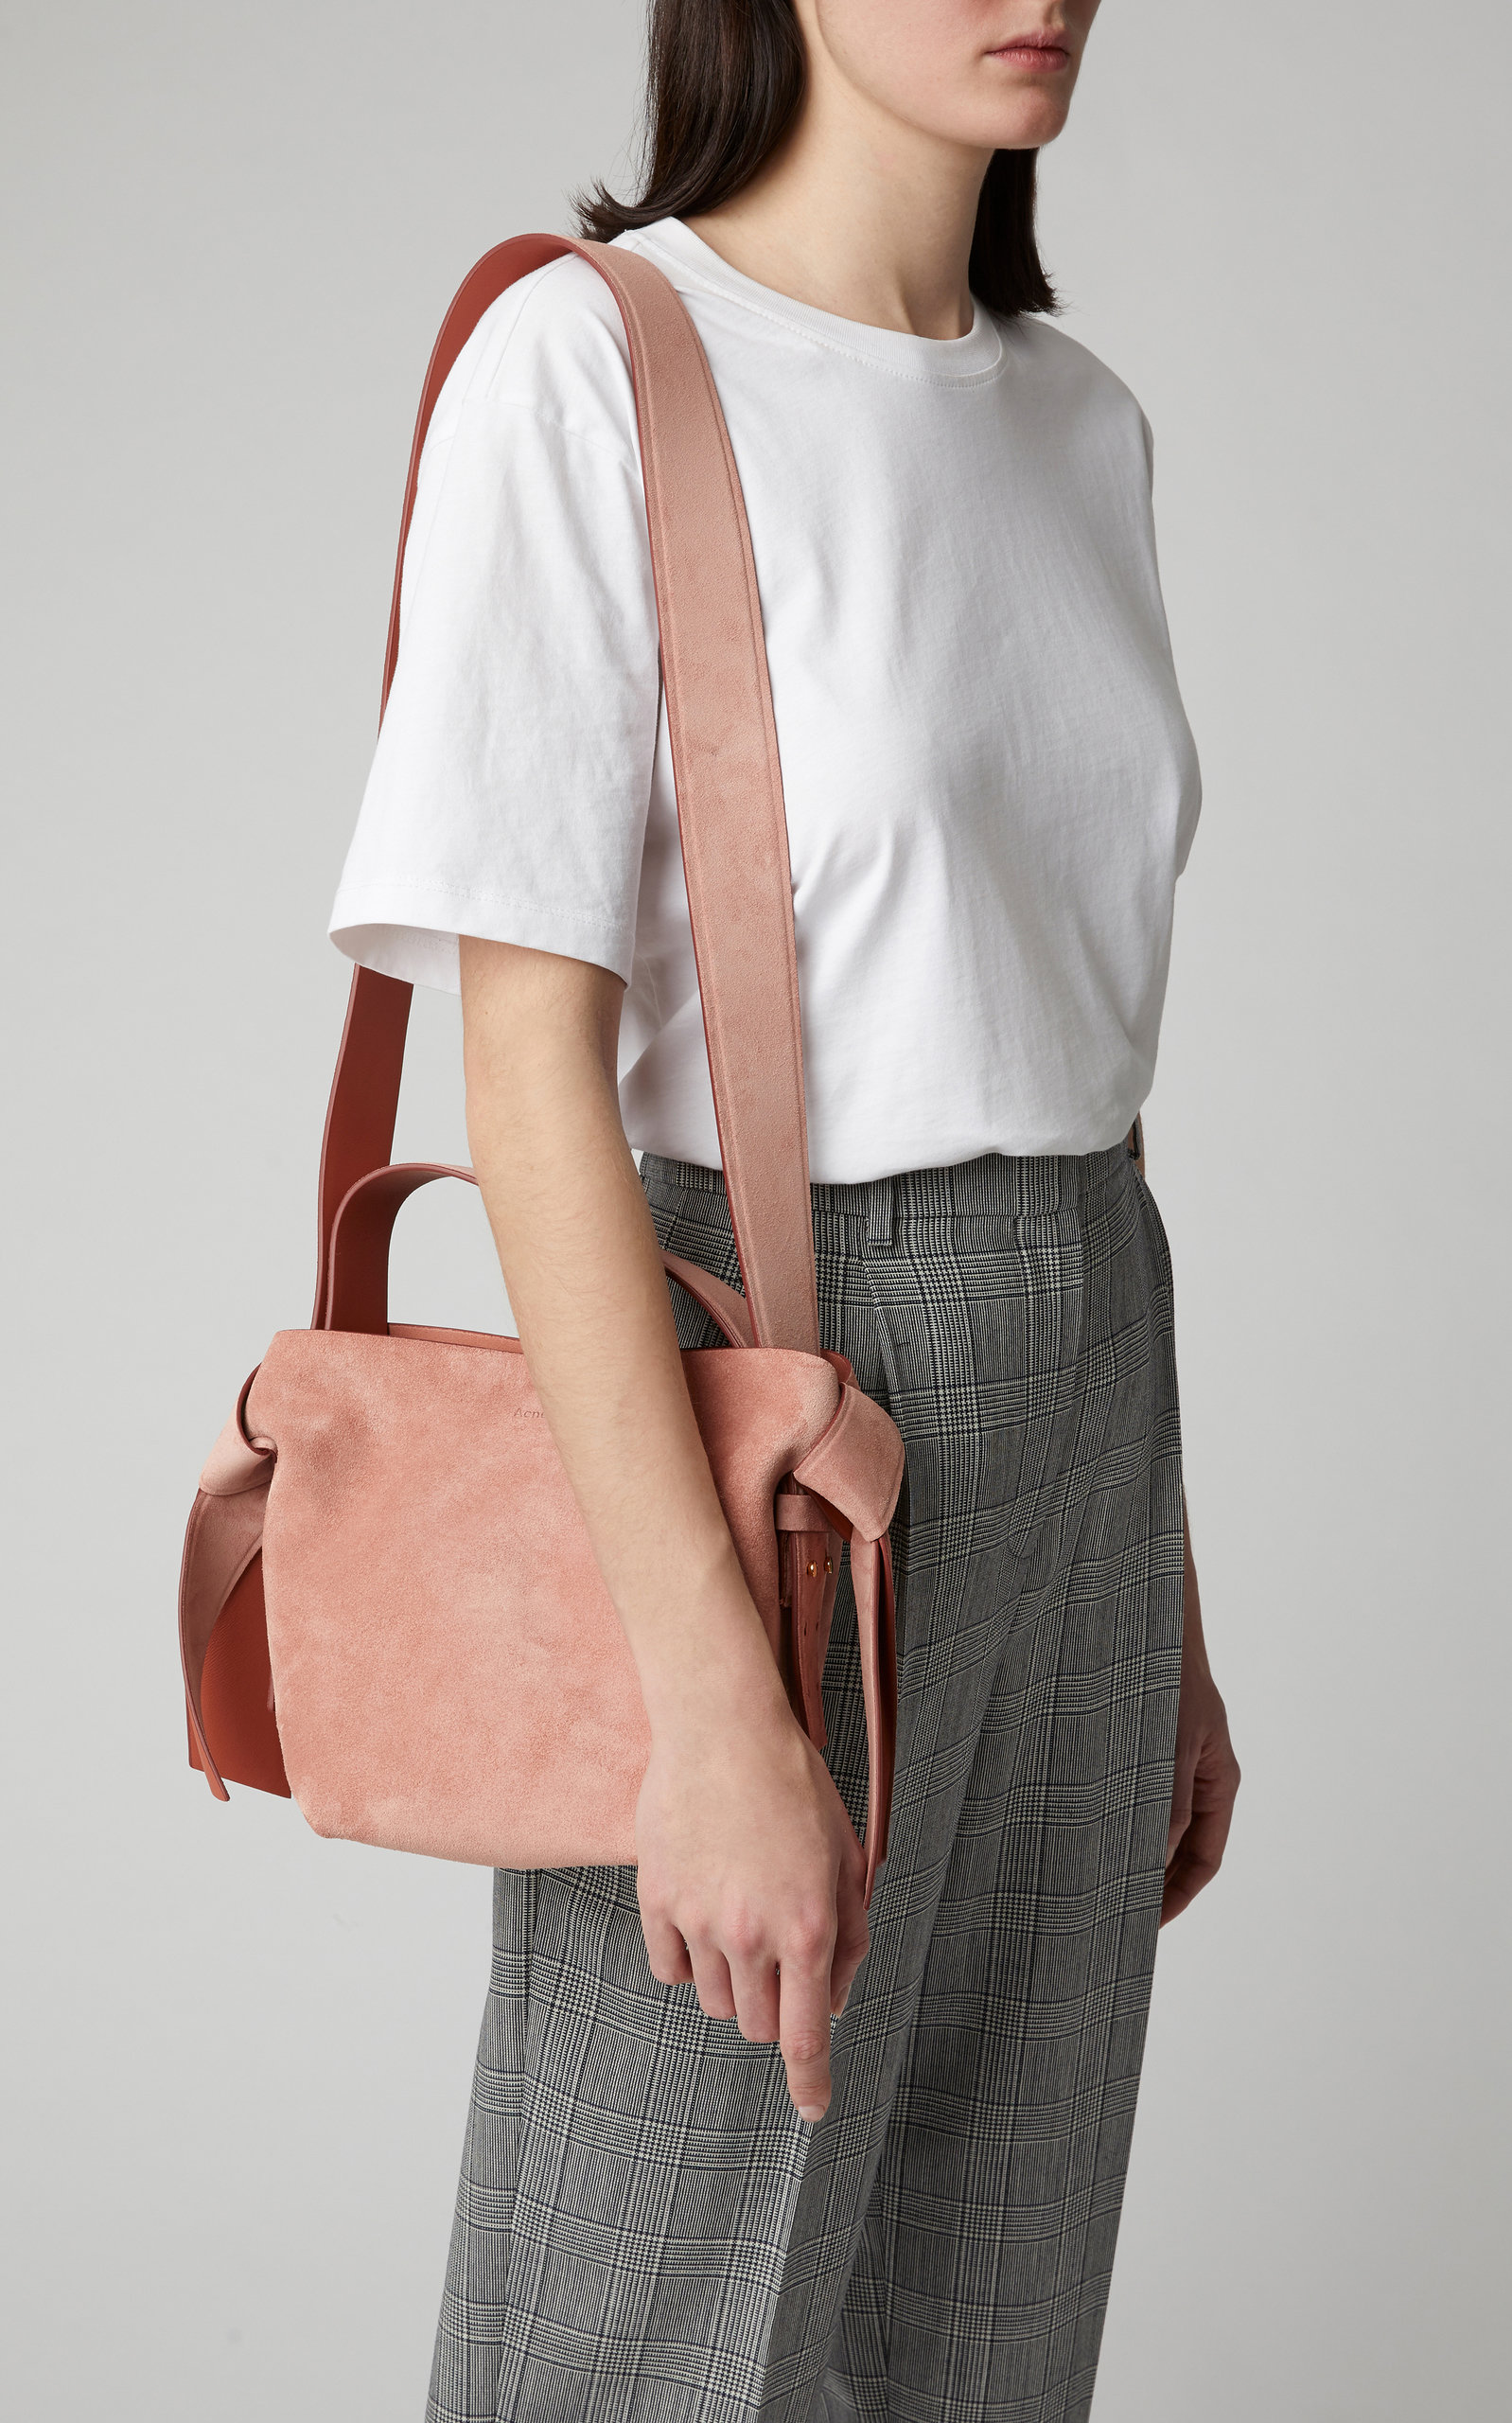 Belly bag Lucas in old pink leather